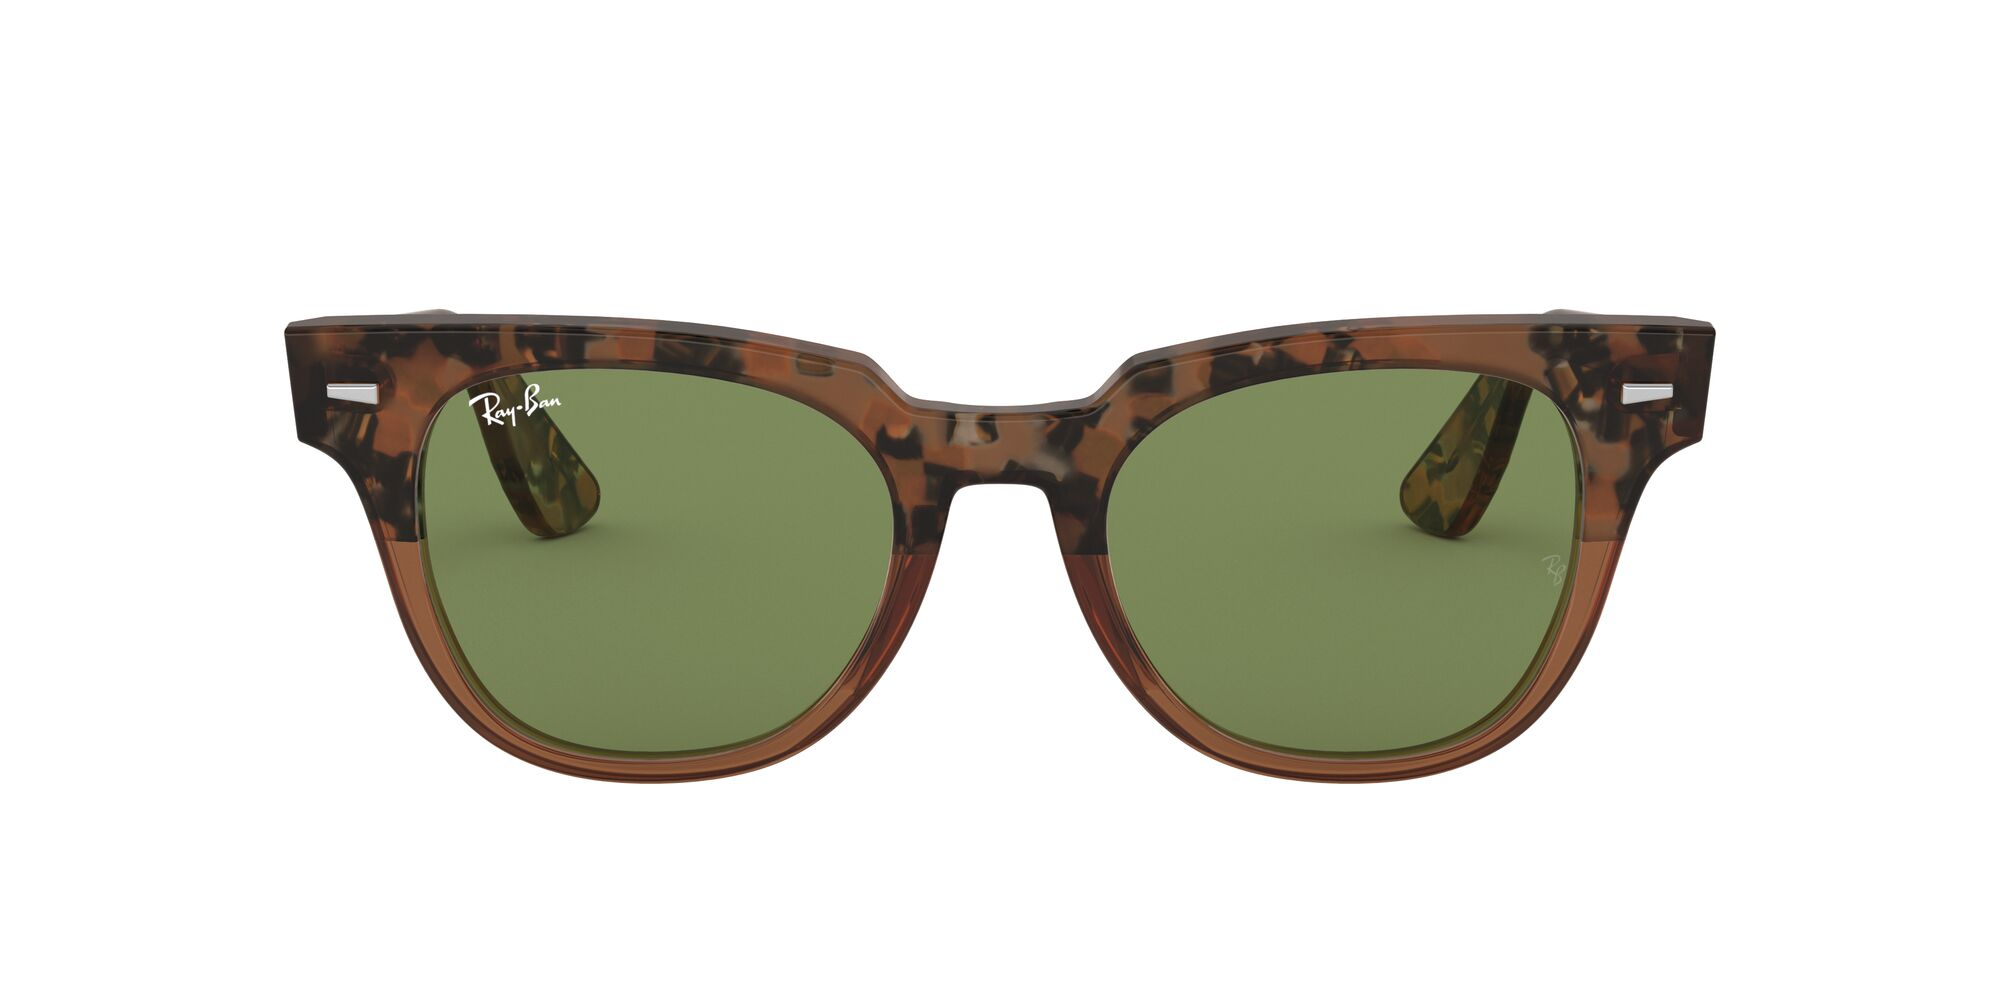 Front Ray-Ban Ray-Ban 0RB2168 128714 49/20 Bruin/Groen